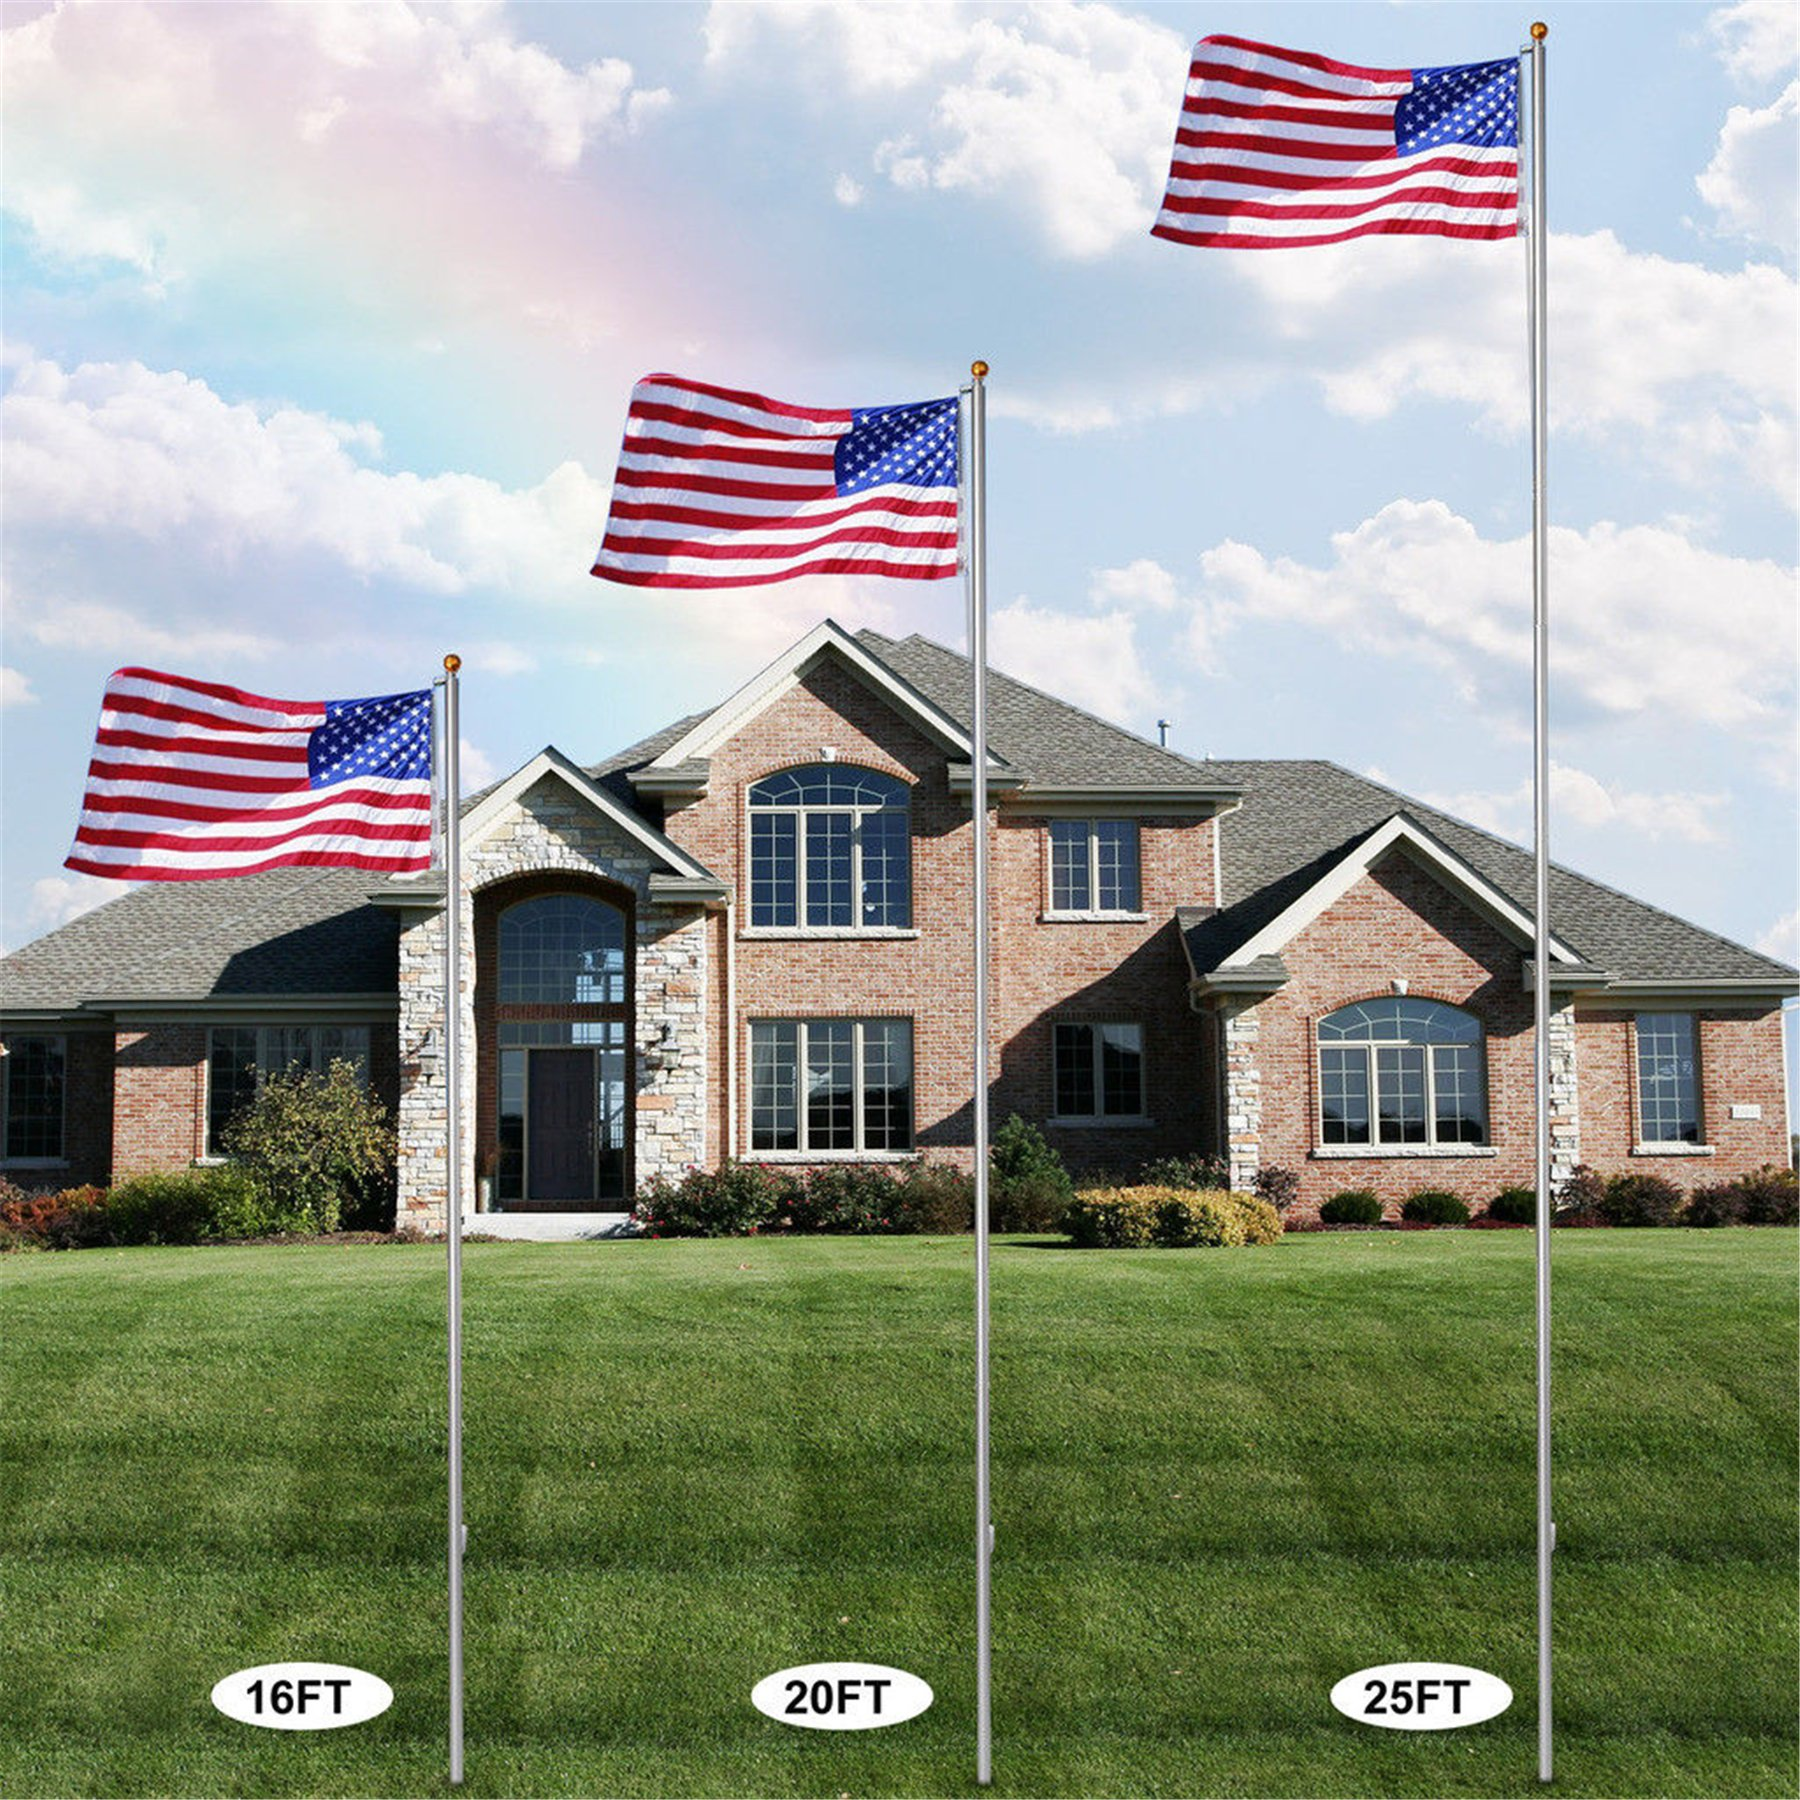 F2C 25Ft Sectional Flagpole Kit Outdoor Gold Ball US American Flag Pole W/ 1PC US Flag (25ft)